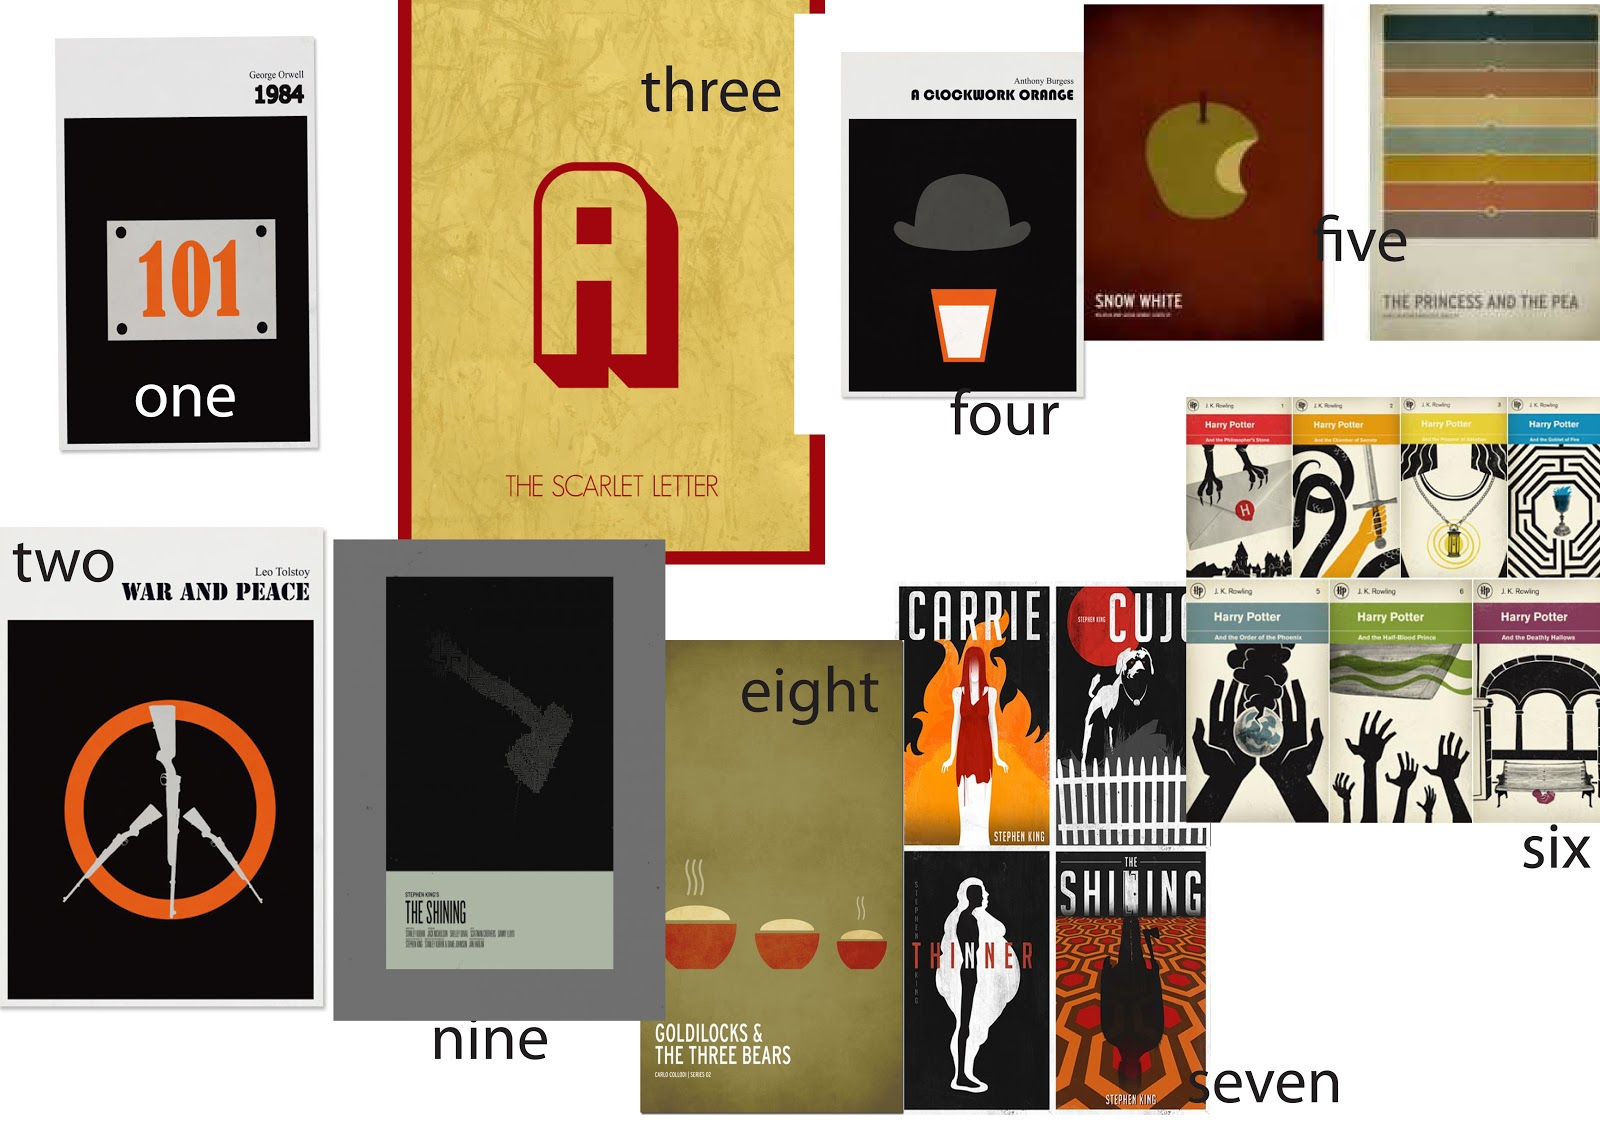 Chinello ogbuagu graphics minimalist moodboard one 1984 book cover of room 101 two war and peace cover depicting of peace symbol made with guns three the scarlet letter book cover of a scarlet madrichimfo Images